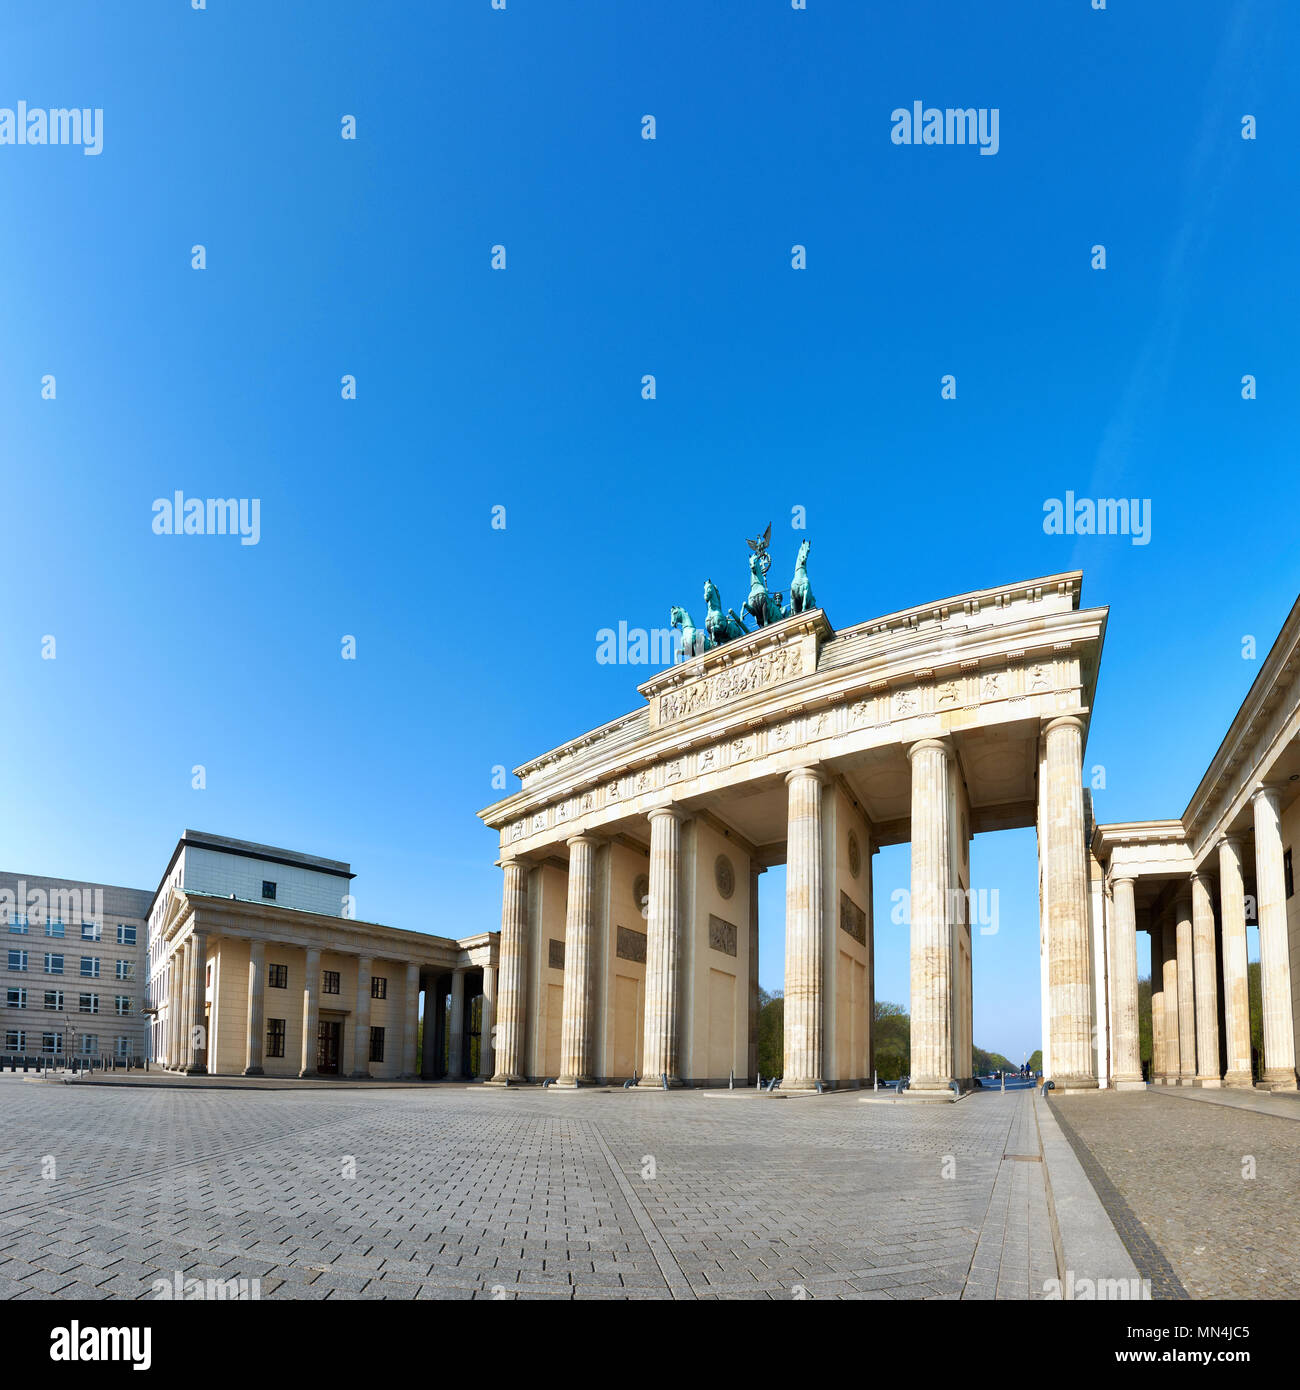 Brandenburg Gate (Brandenburger Tor) in Berlin, Germany, on a bright day with blue sky behind, text space Stock Photo